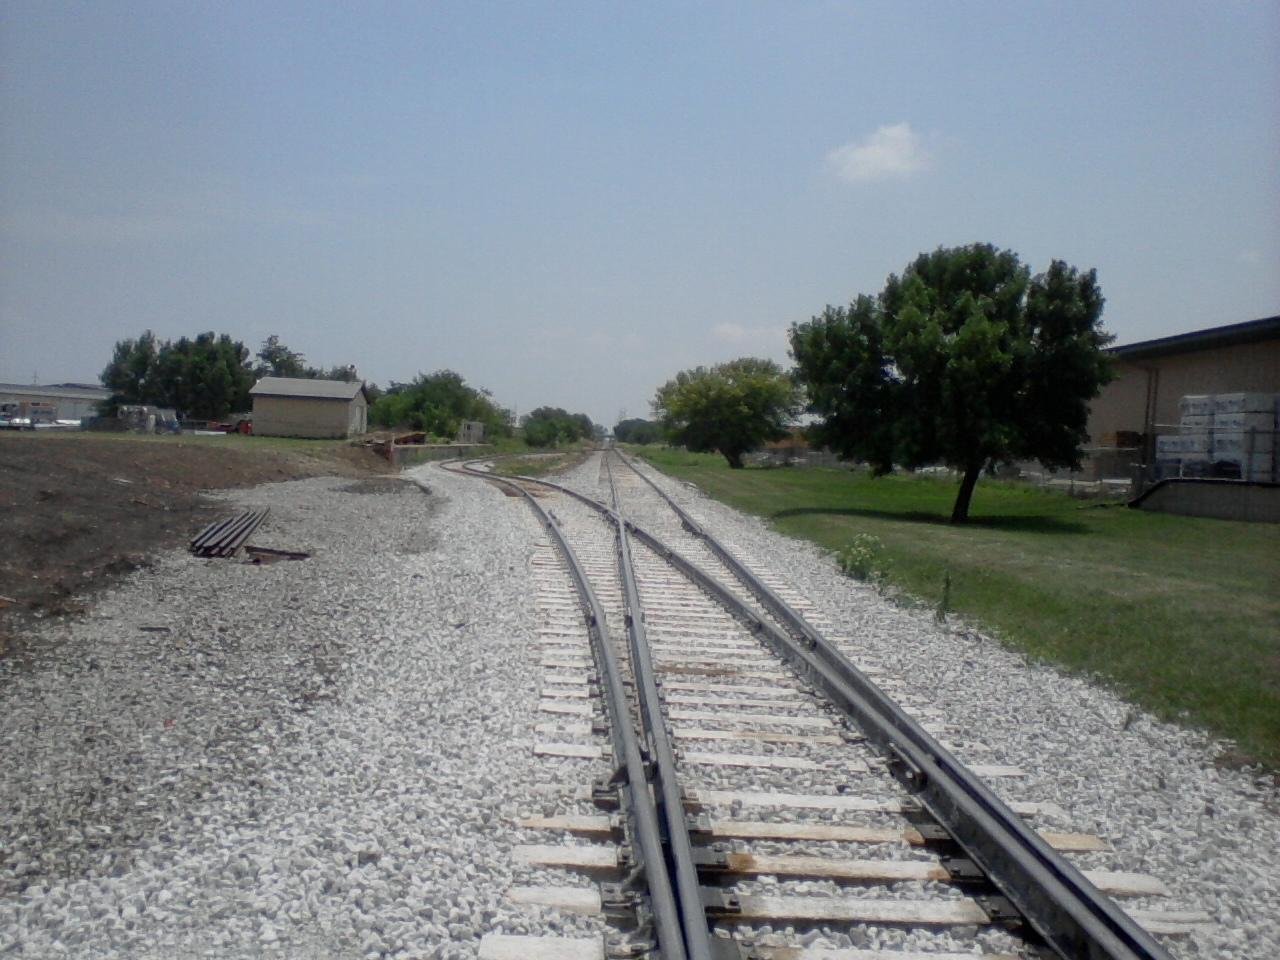 A new switch in place on the north end of the Grimes Line across from Beisser Lumber, creating a new runaround for trains on the line.